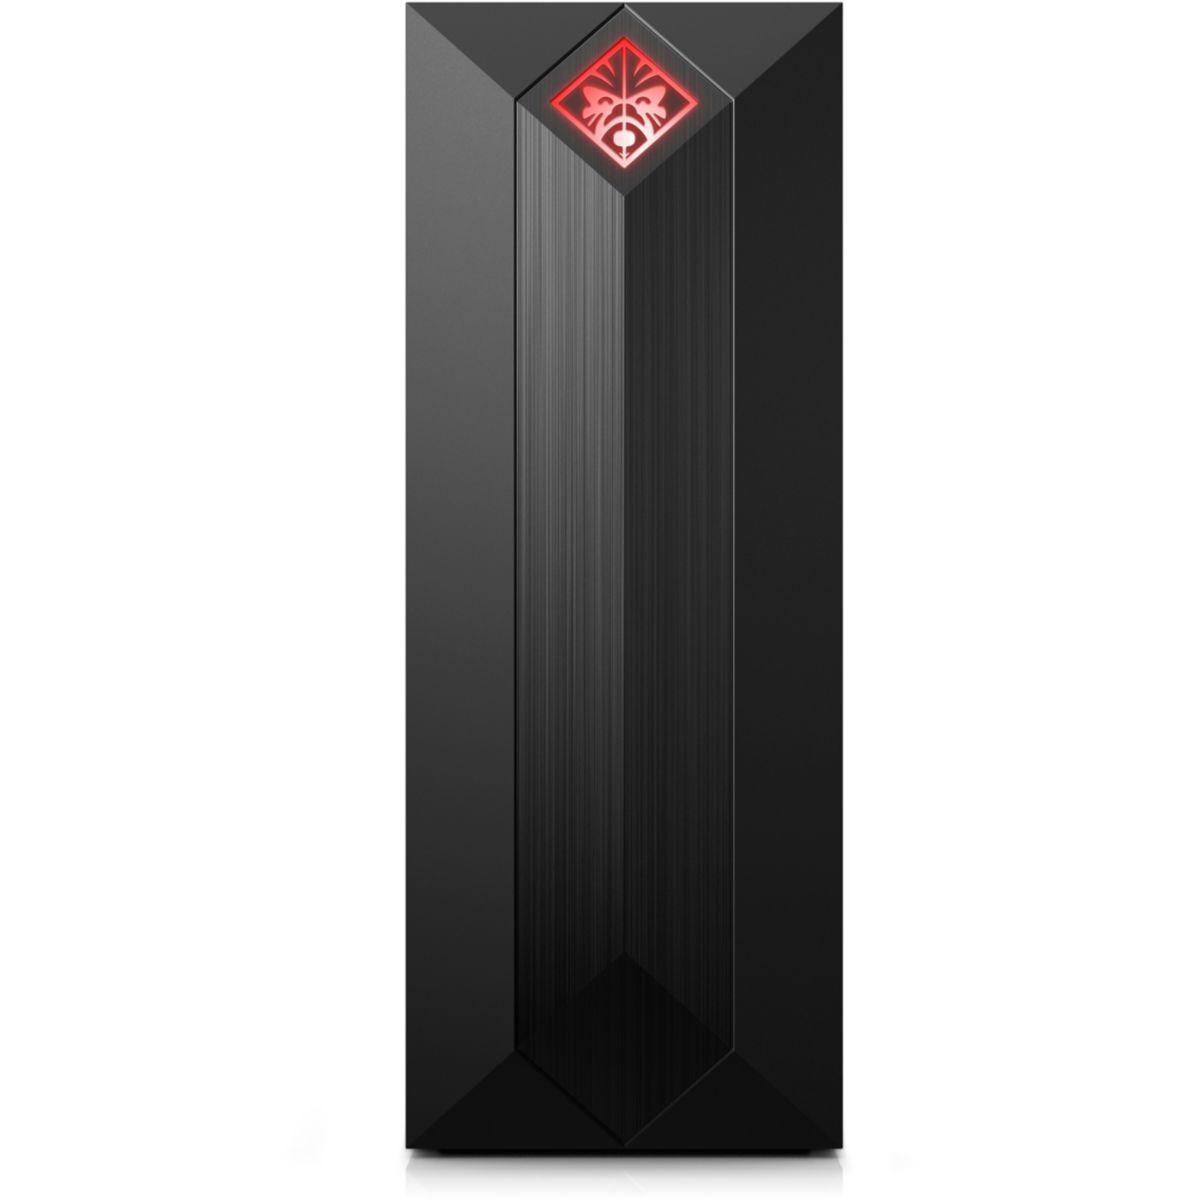 Pc gamer hp omen 875-0044nf